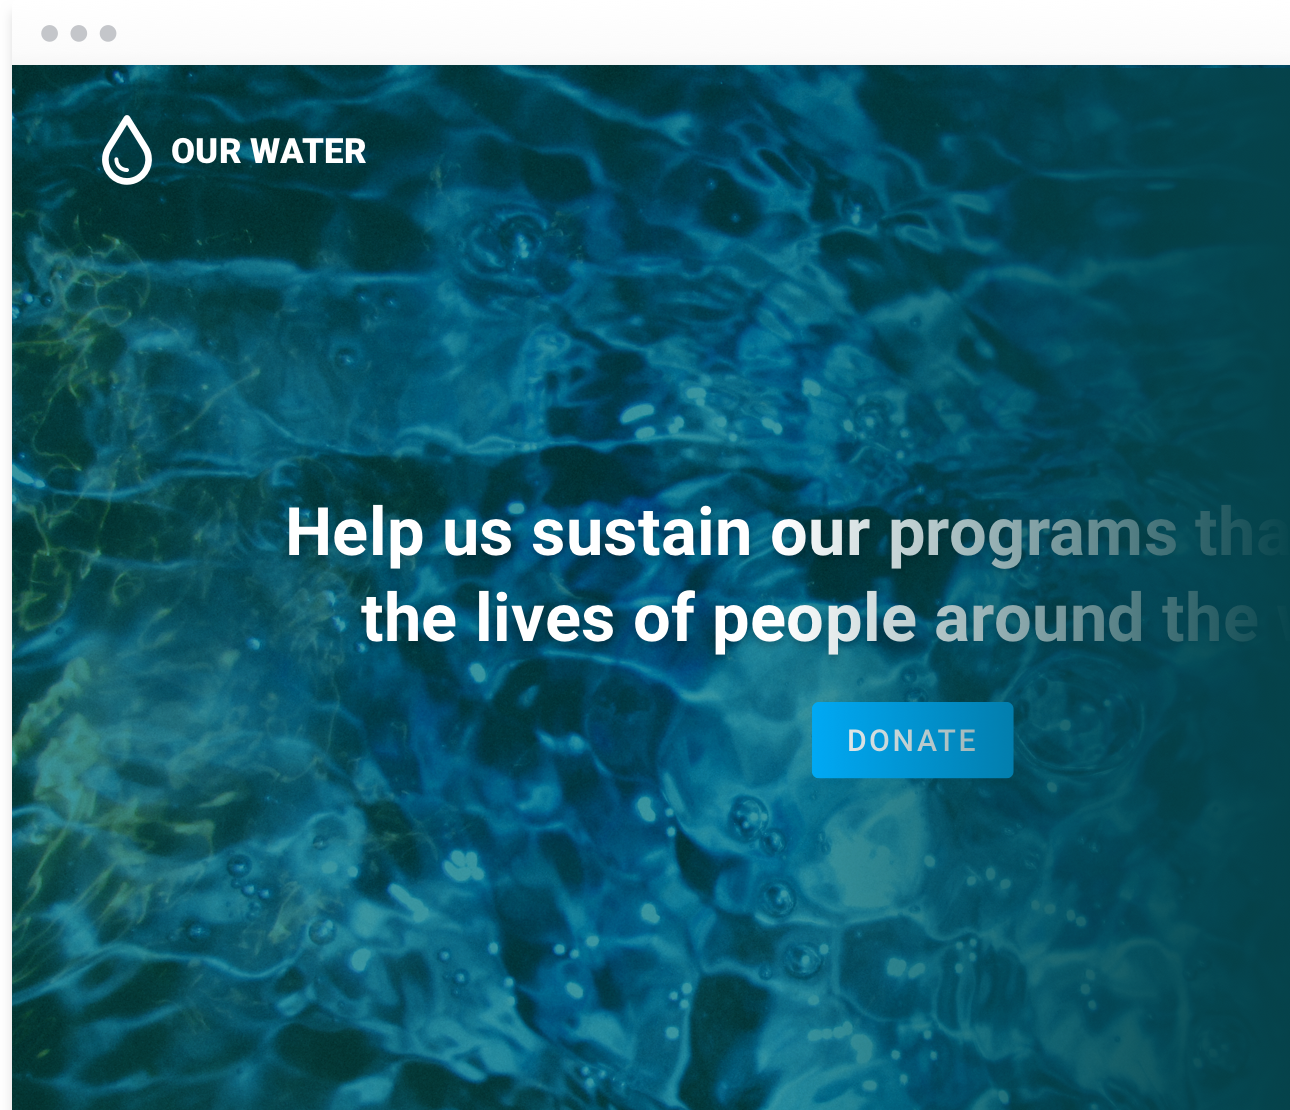 Screenshot of a fundraising website where the background is teal water overlaid with white text and a blue donate button.